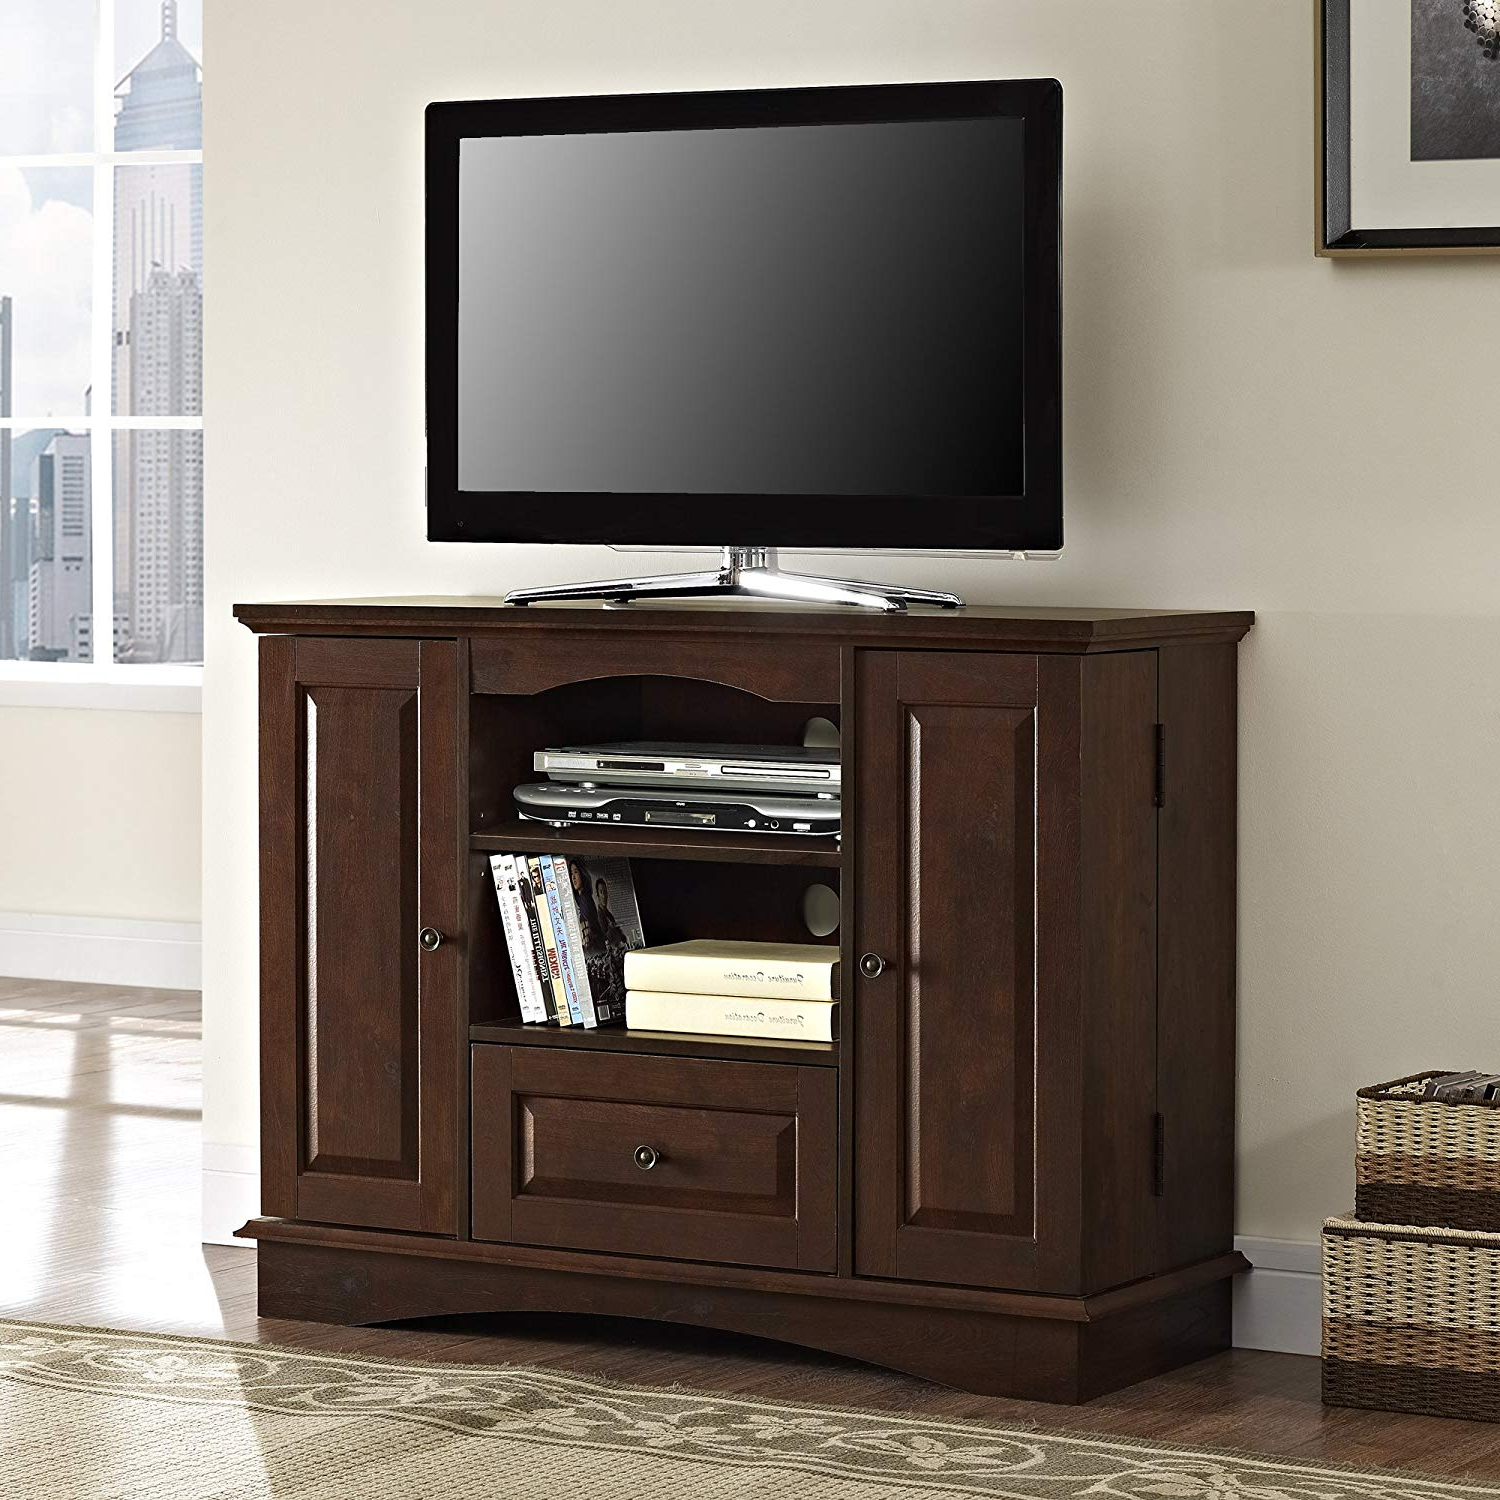 "Amazon: Walker Edison 42"" Highboy Style Wood Tv Stand Console Within Trendy Widescreen Tv Stands (View 4 of 20)"